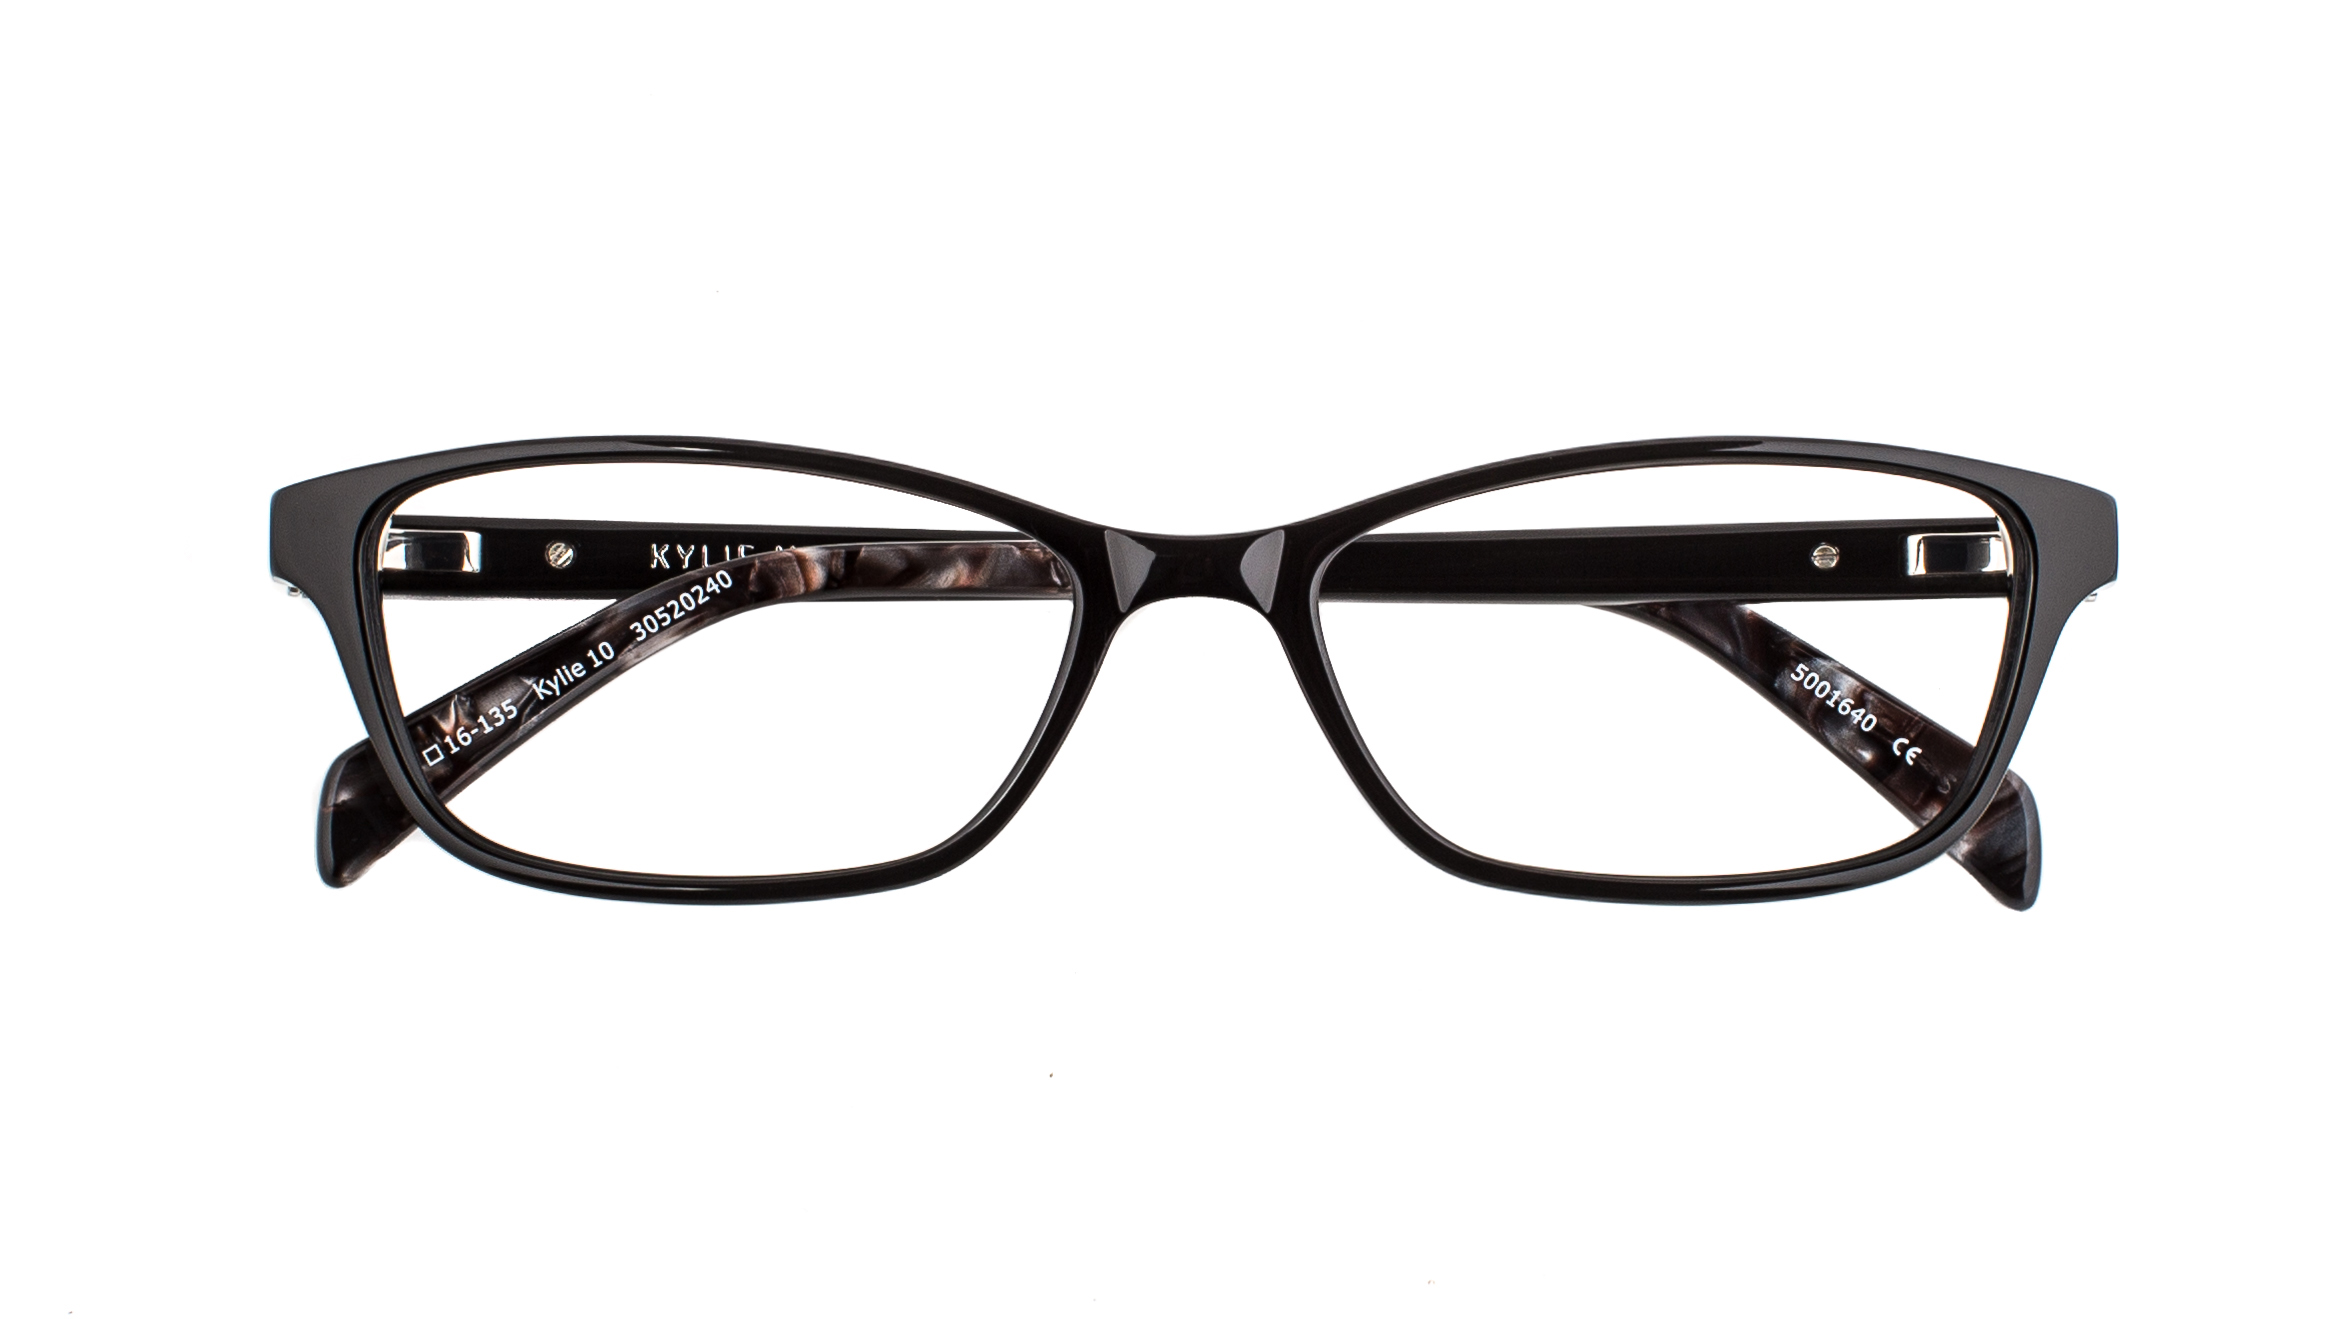 Kylie Minogue Eyewear_Kylie 10_SKU 30520240_RRP 2 pairs from $369